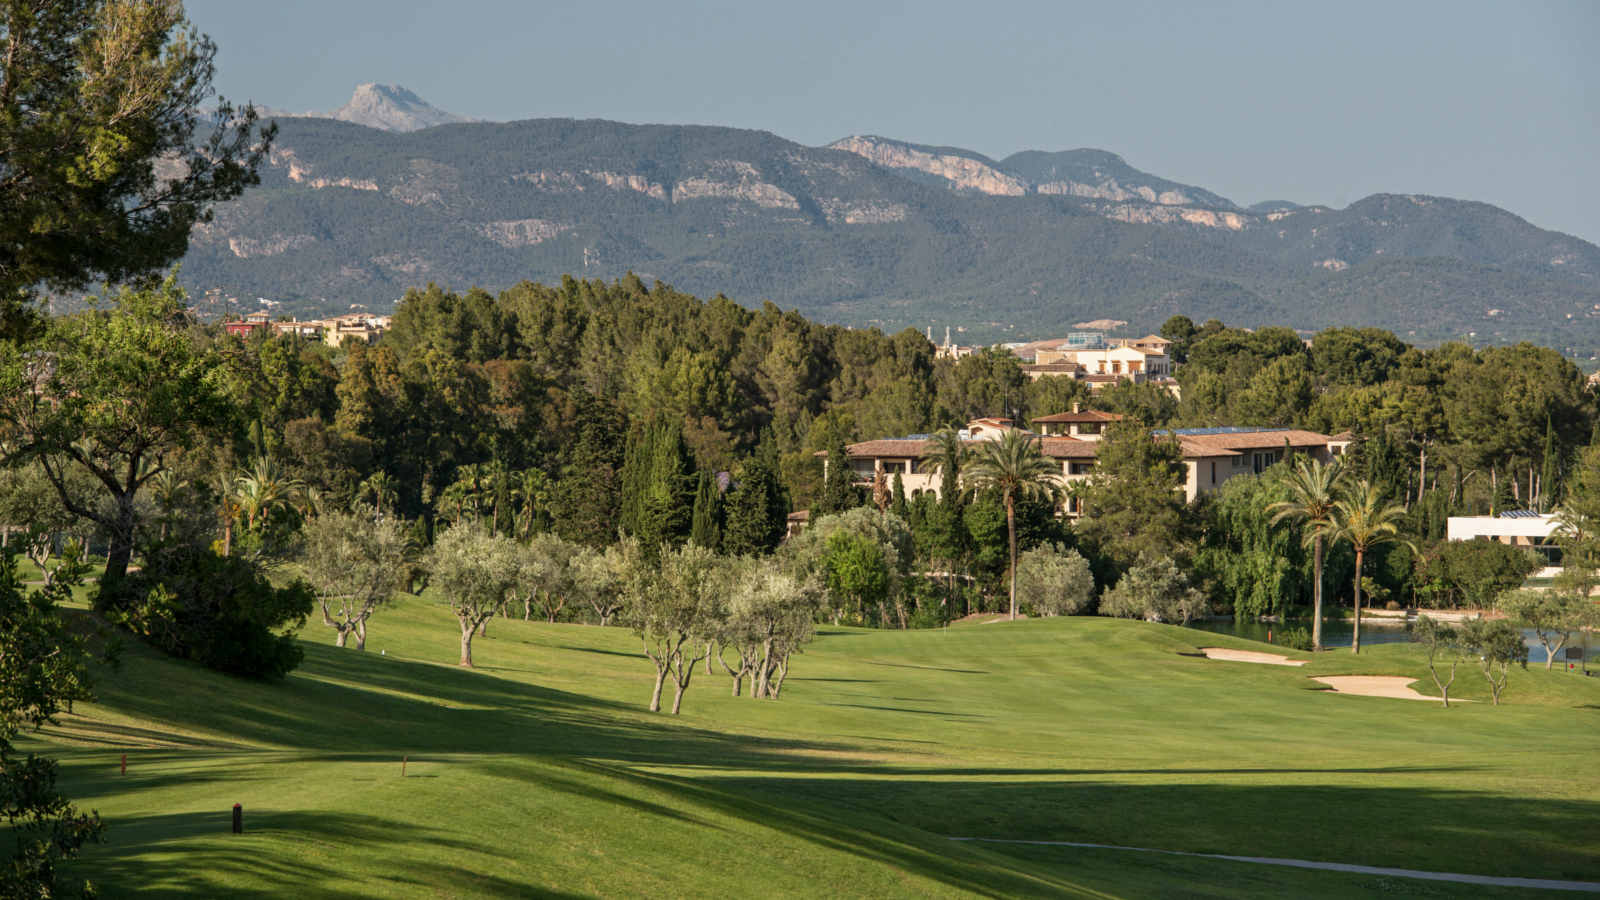 Son Vida golf course hosted two european tours at Sheraton Mallorca